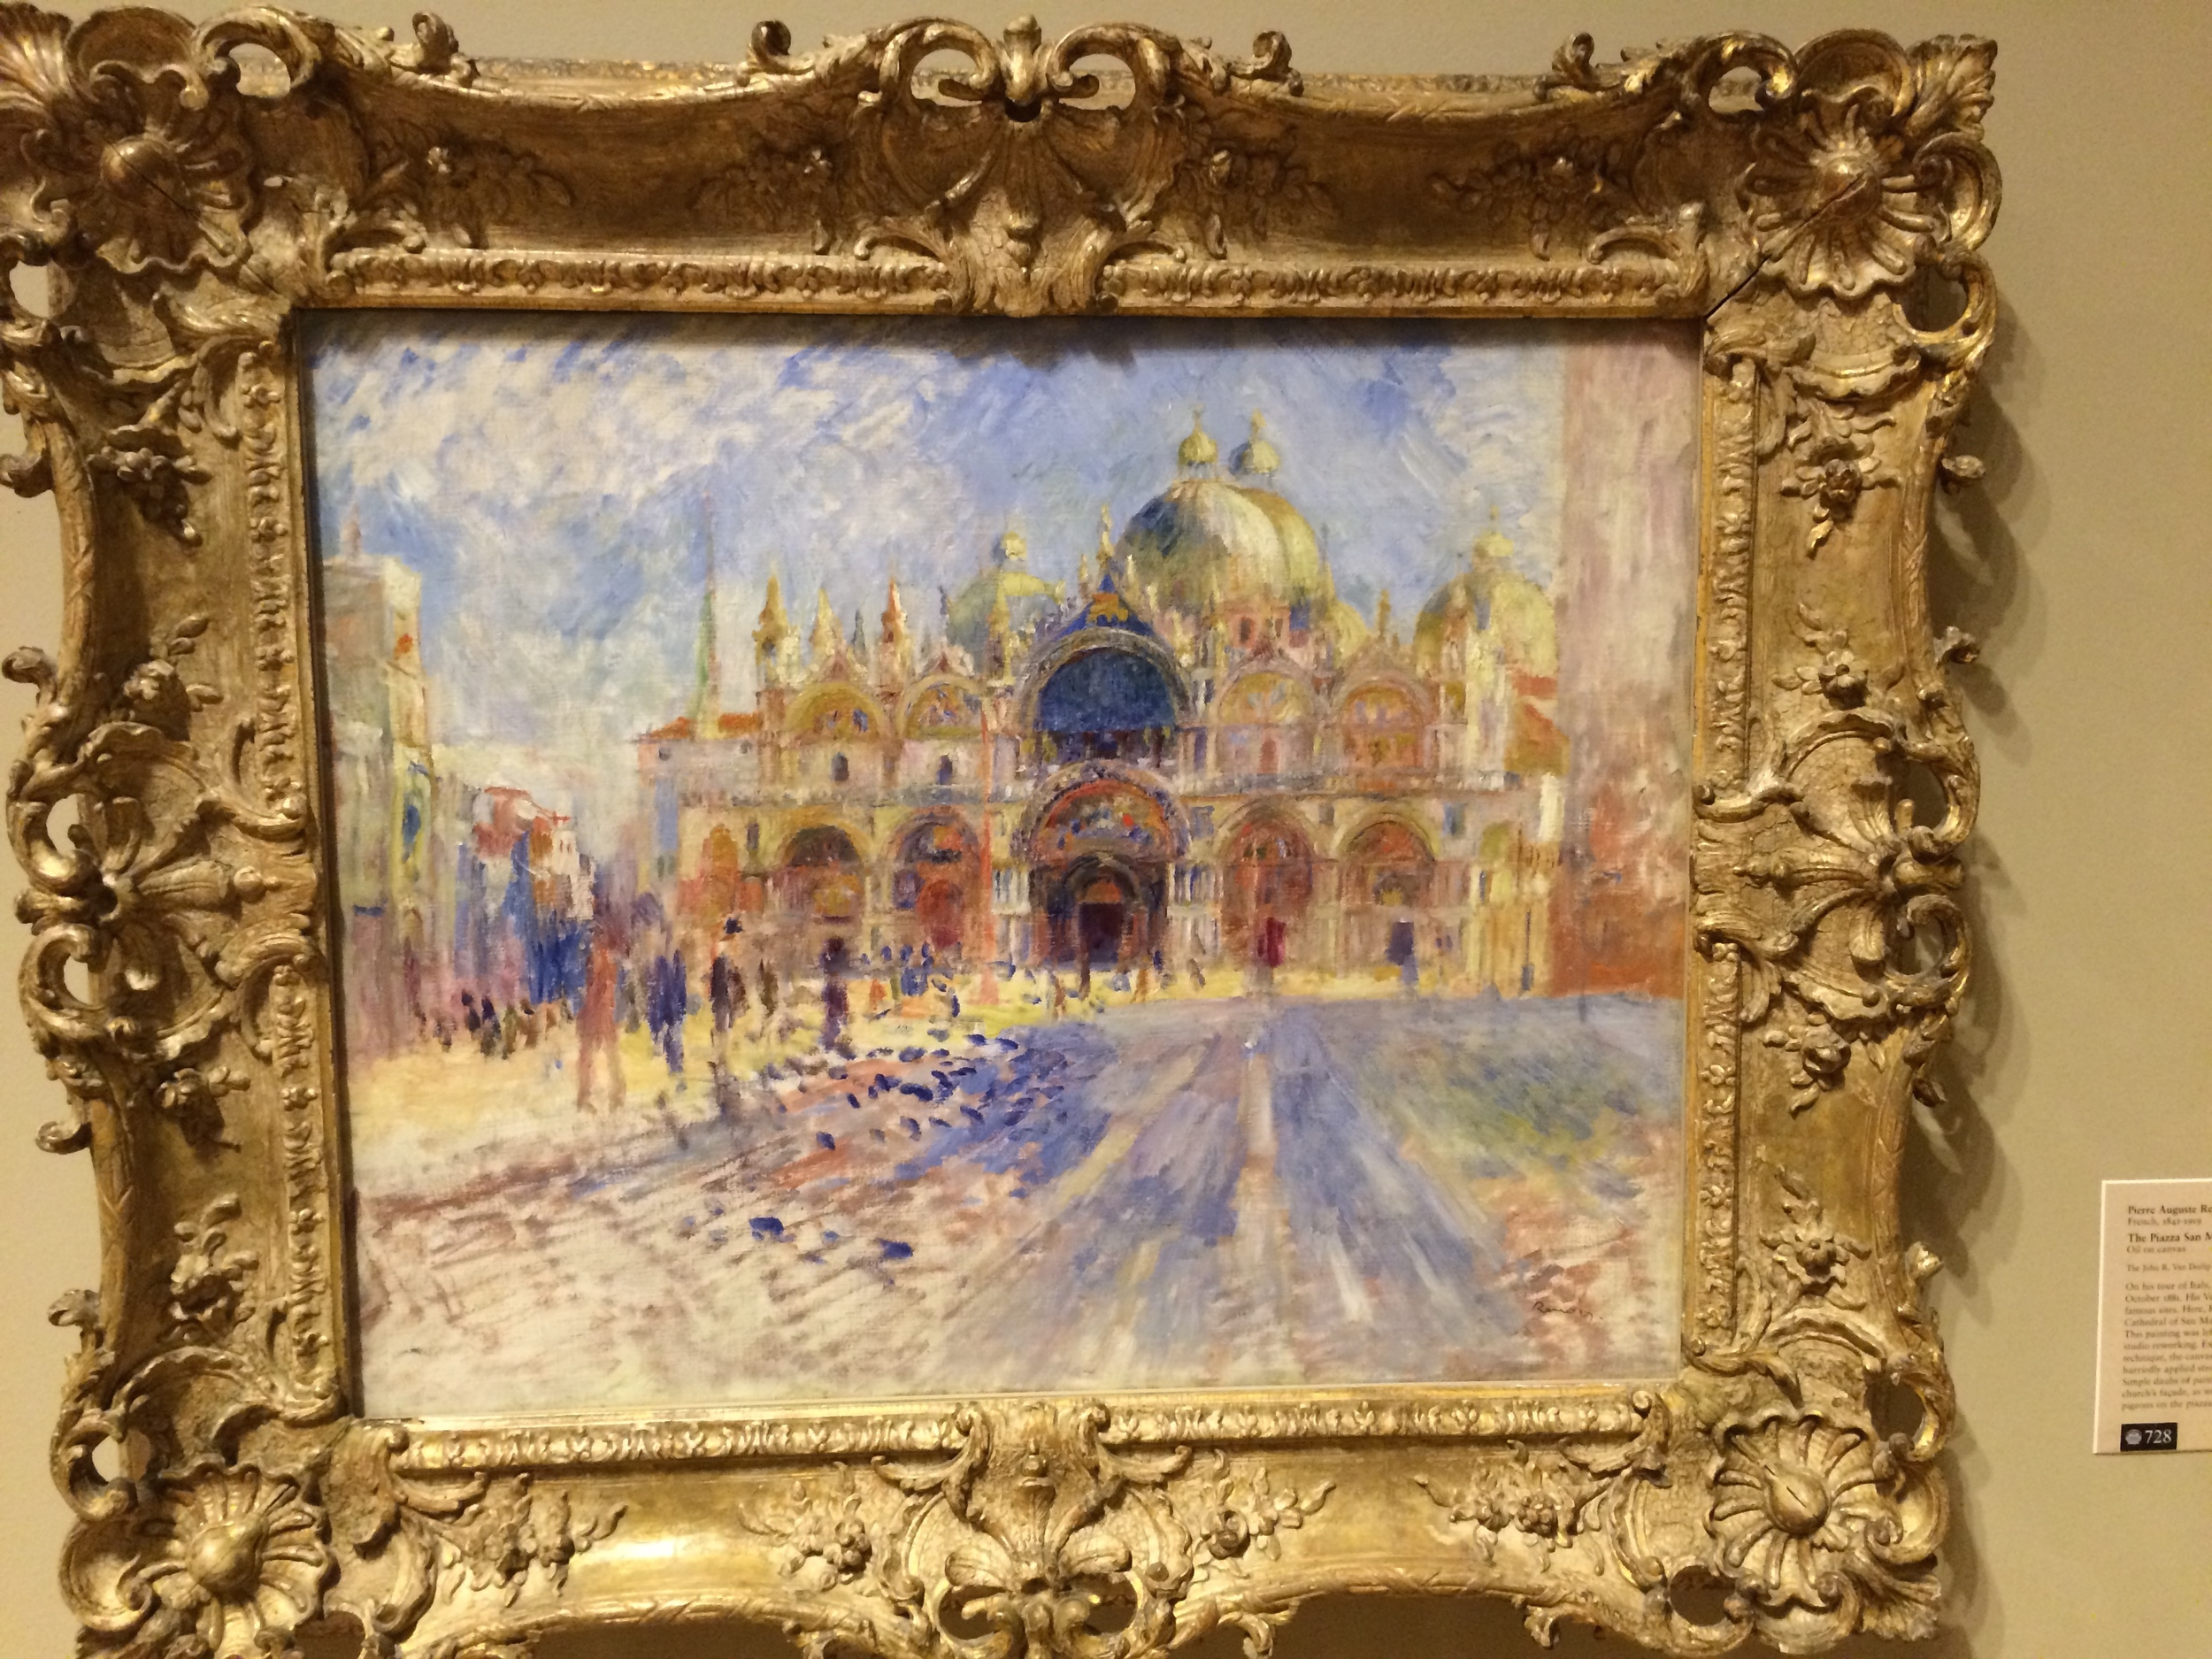 This painting had special significance for Matthew Mitchell in Pod 8. It is a painting of Venice, Italy, in the Piazza San Marco. It is idealized and romanticized, because in reality, the piazza is not that colorful...but it is beauty as the artist remembers it. The blue on the piazza stone walkway may be representative of the frequent flooding of the piazza, during which the locals get out large tables to walk on.